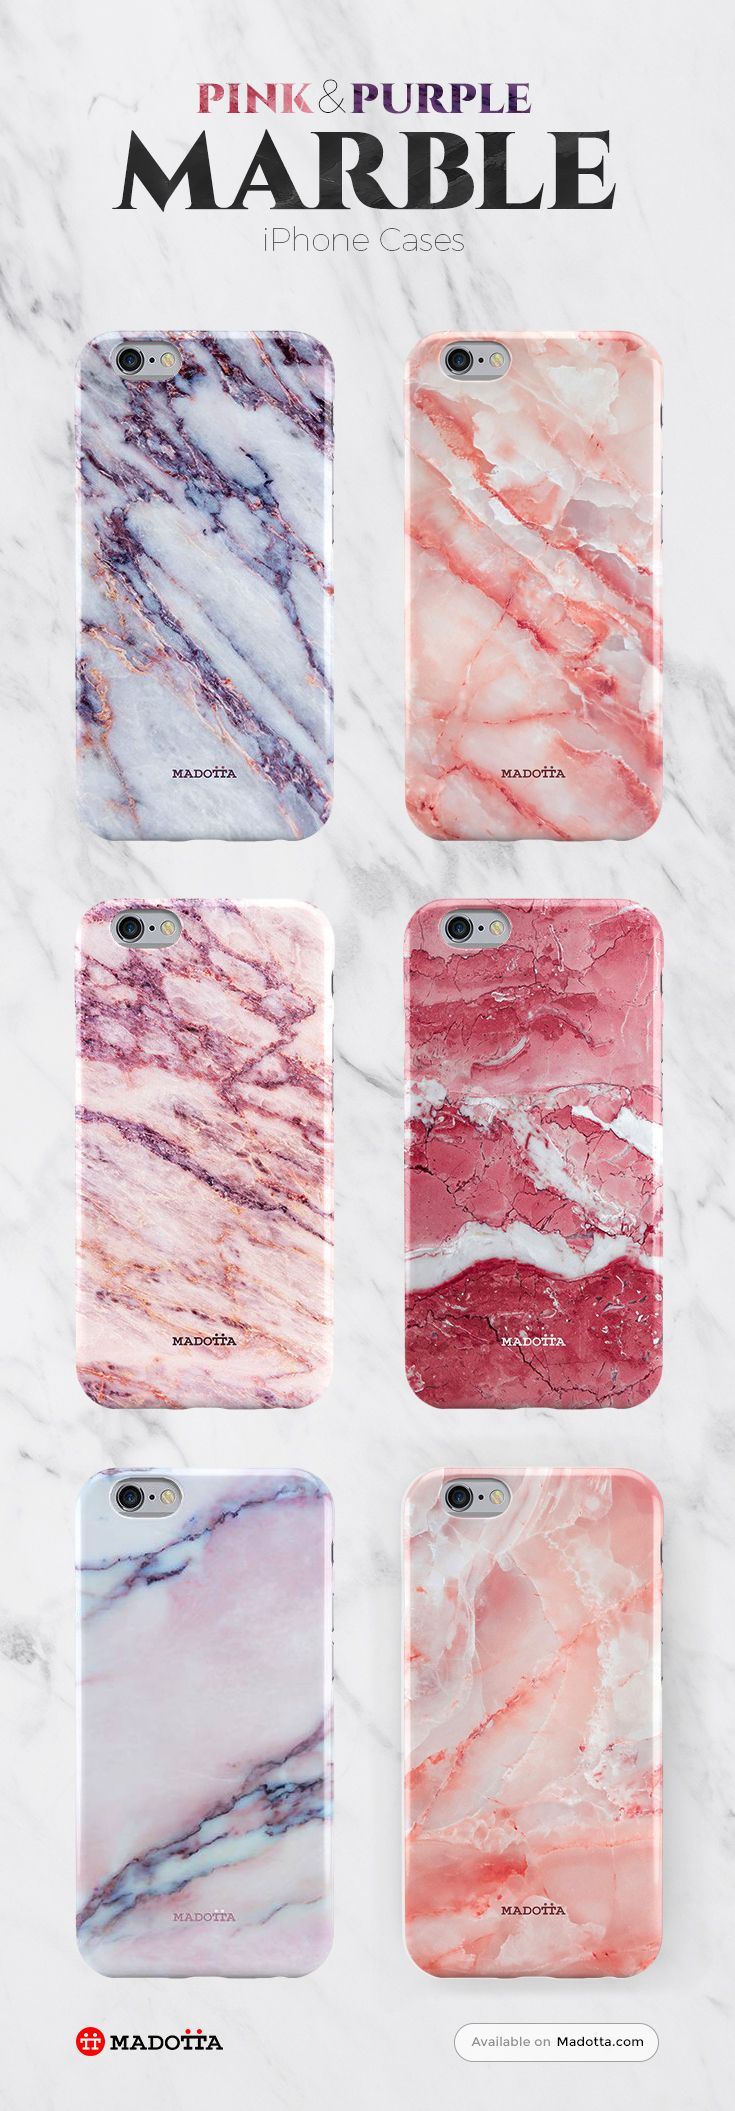 Purple and Pink Marble iPhone 7 Cases by #Madotta View more designs at https://madotta.com/collections/marble-iphone-cases/?utm_term=caption+link&utm_medium=Social&utm_source=Pinterest&utm_campaign=IG+to+Pinterest+Auto